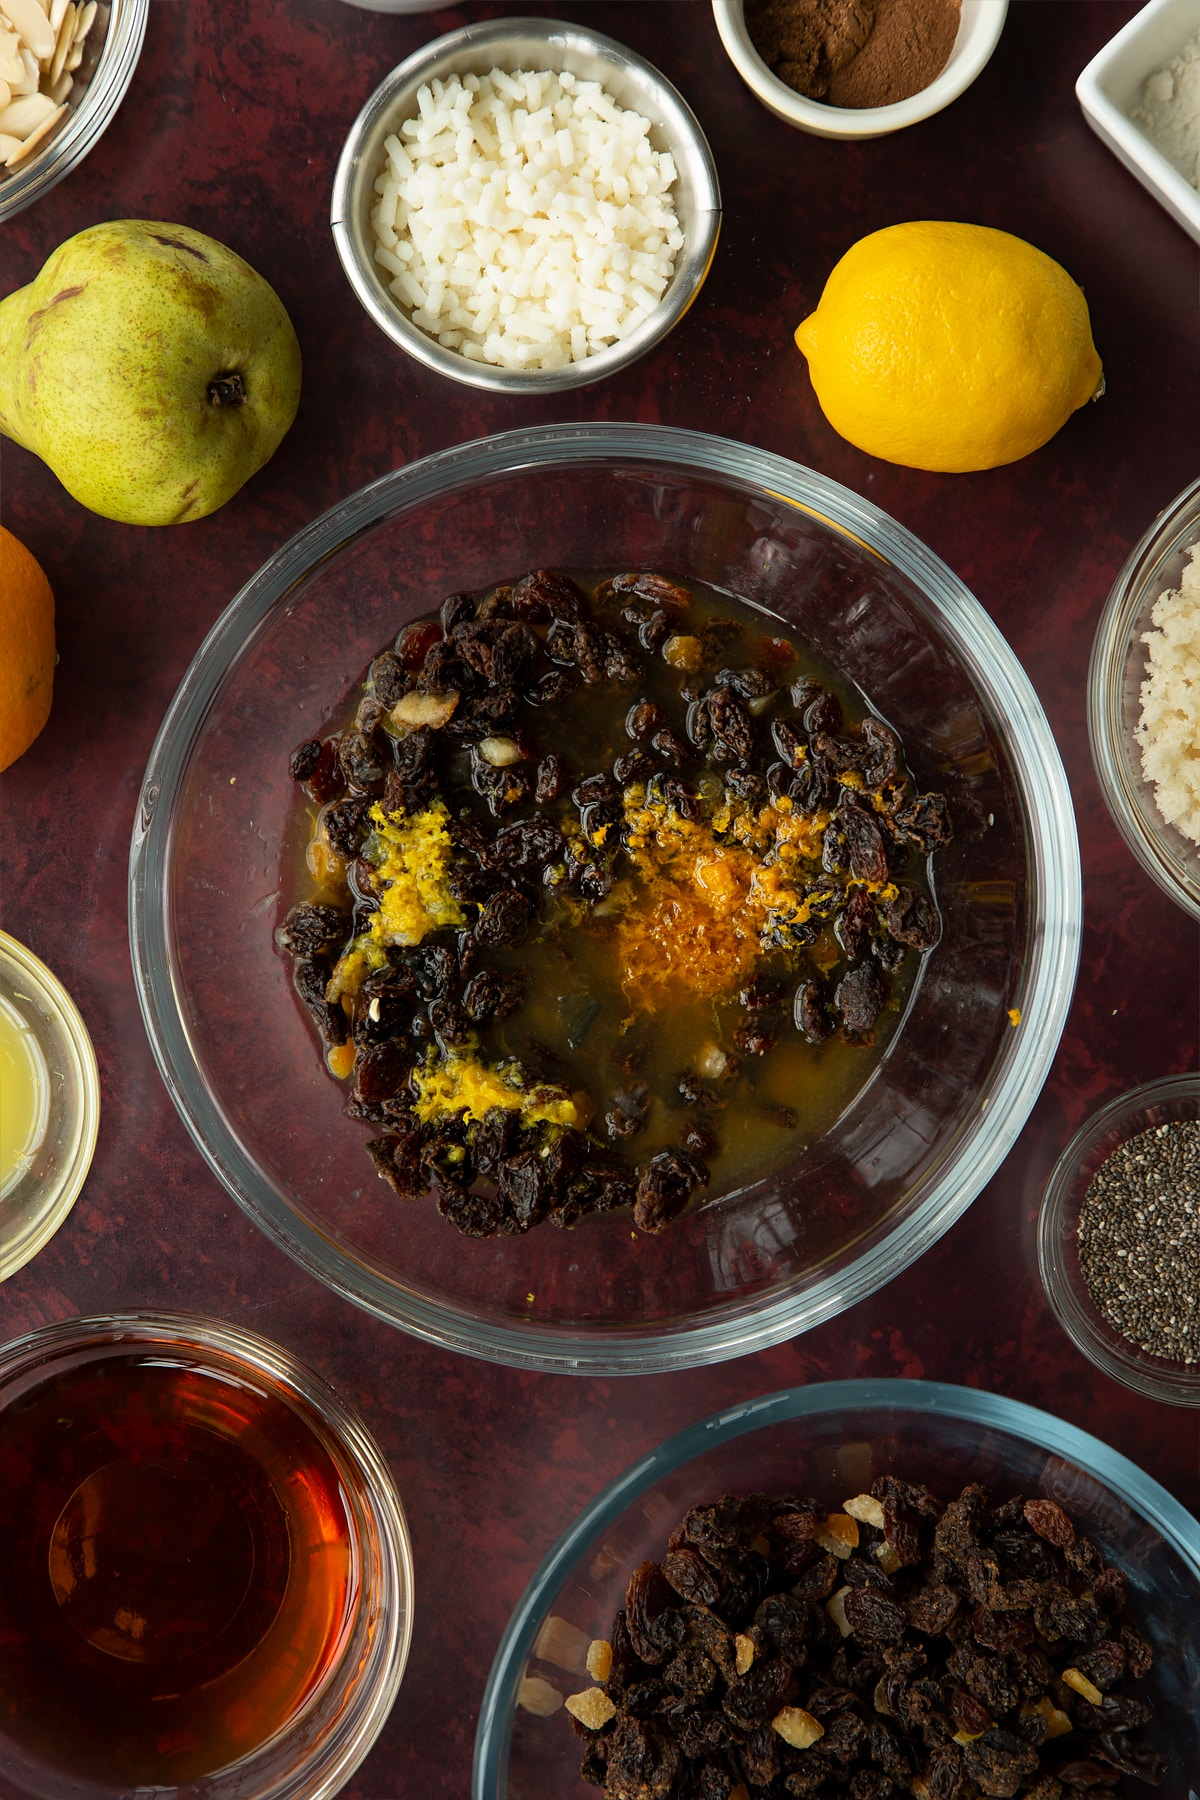 Mixed fruit, brandy, citrus juice and zest in a glass mixing bowl. Ingredients to make vegan Christmas pudding surround the bowl.